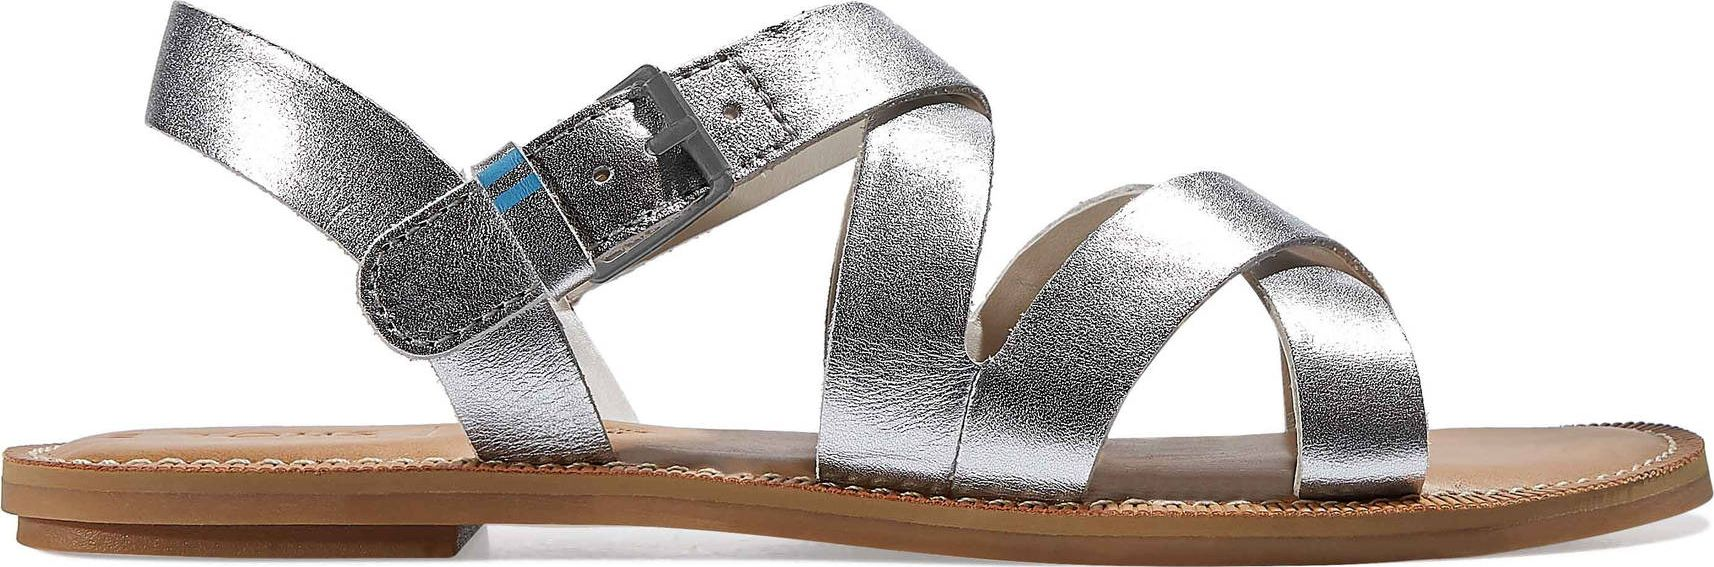 TOMS Leather Women's Sicily Silver 37,5